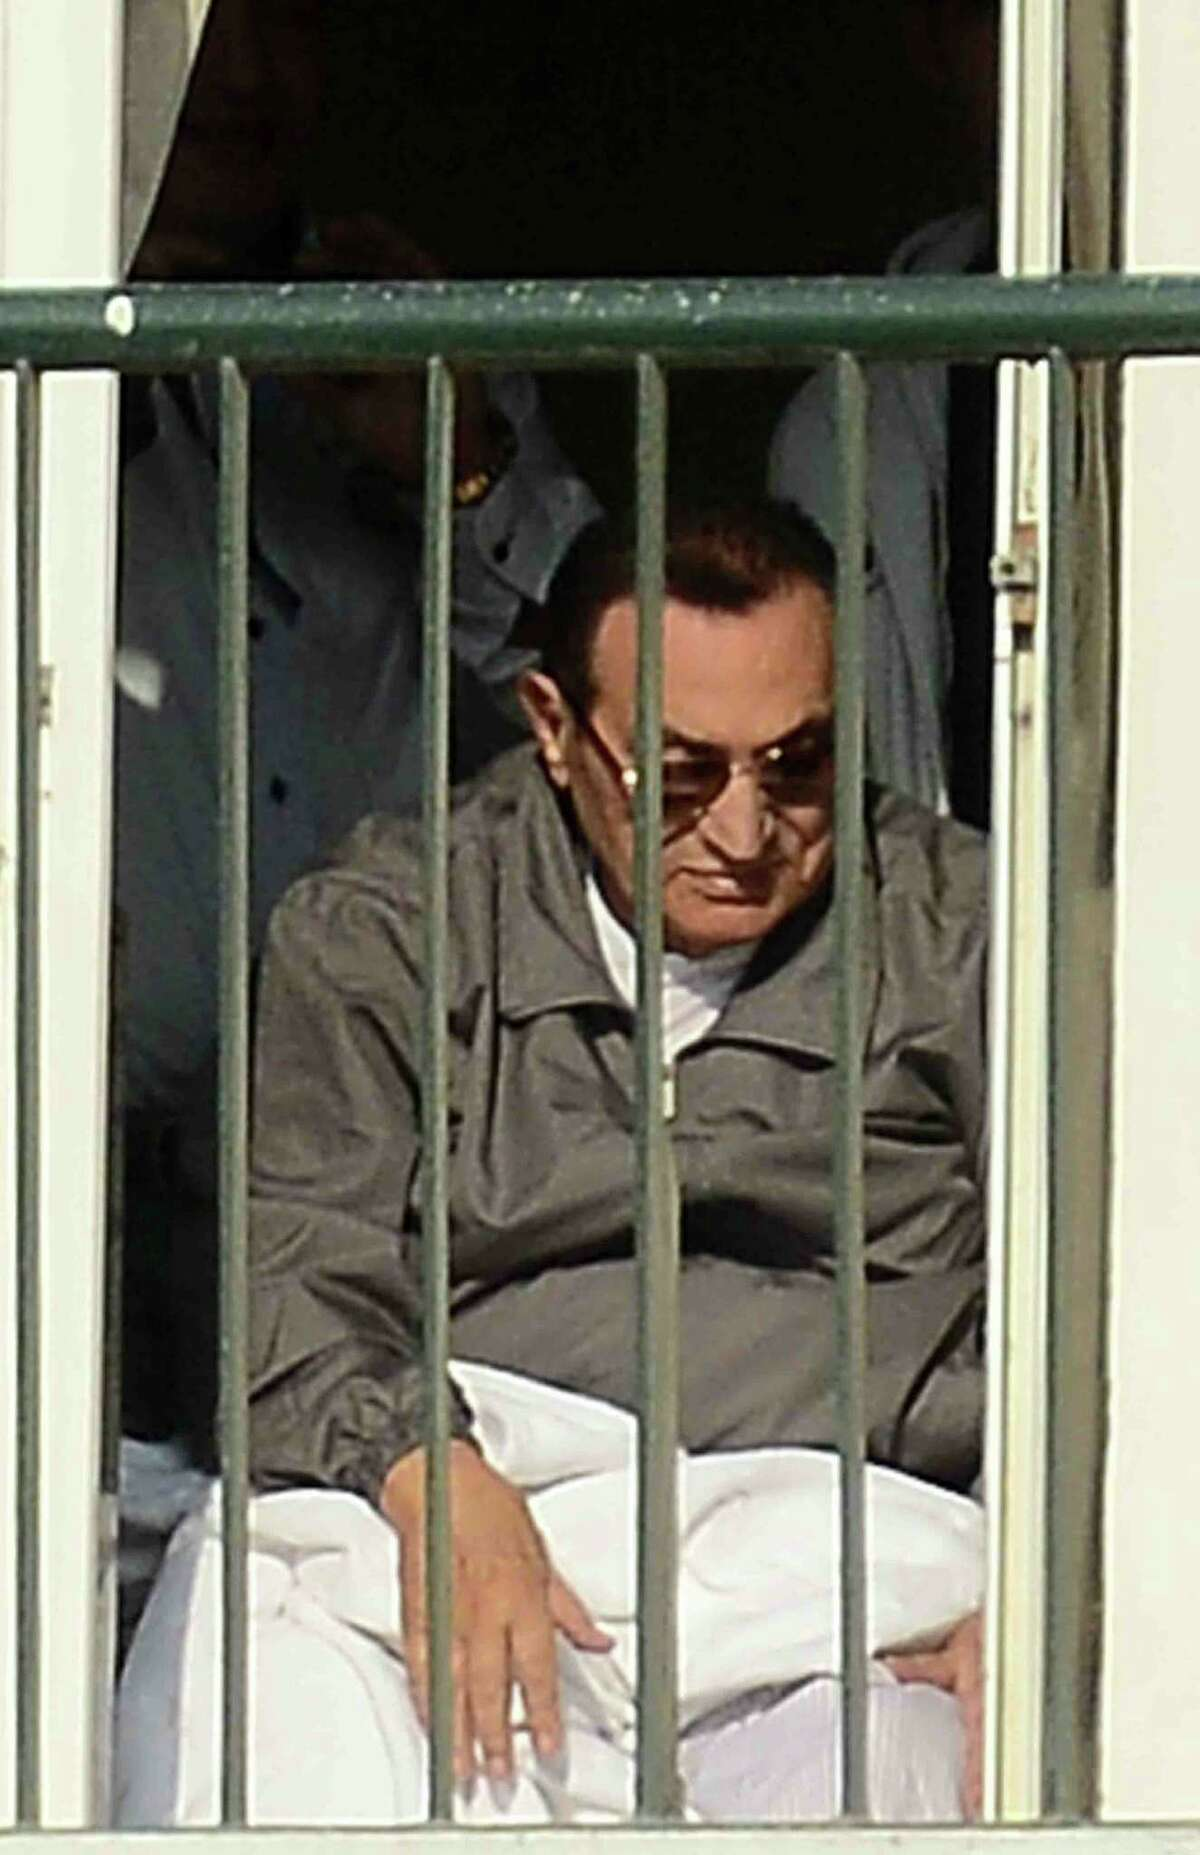 Egypt's former president Hosni Mubarak sits in his chair at the door leading to the balcony of his room at the Maadi military hospital in Cairo on November 29, 2014 after a court dismissed a murder charge against the ousted leader over the deaths of protesters during a 2011 uprising that ended the former strongman's decades-long rule. The court also acquitted Mubarak of a corruption charge, but he will remain in prison because he is serving a three-year sentence in a separate corruption case. AFP PHOTO/AL-WATAN NEWSPAPER/MOHAMED NABILMOHAMED NABIL/AFP/Getty Images